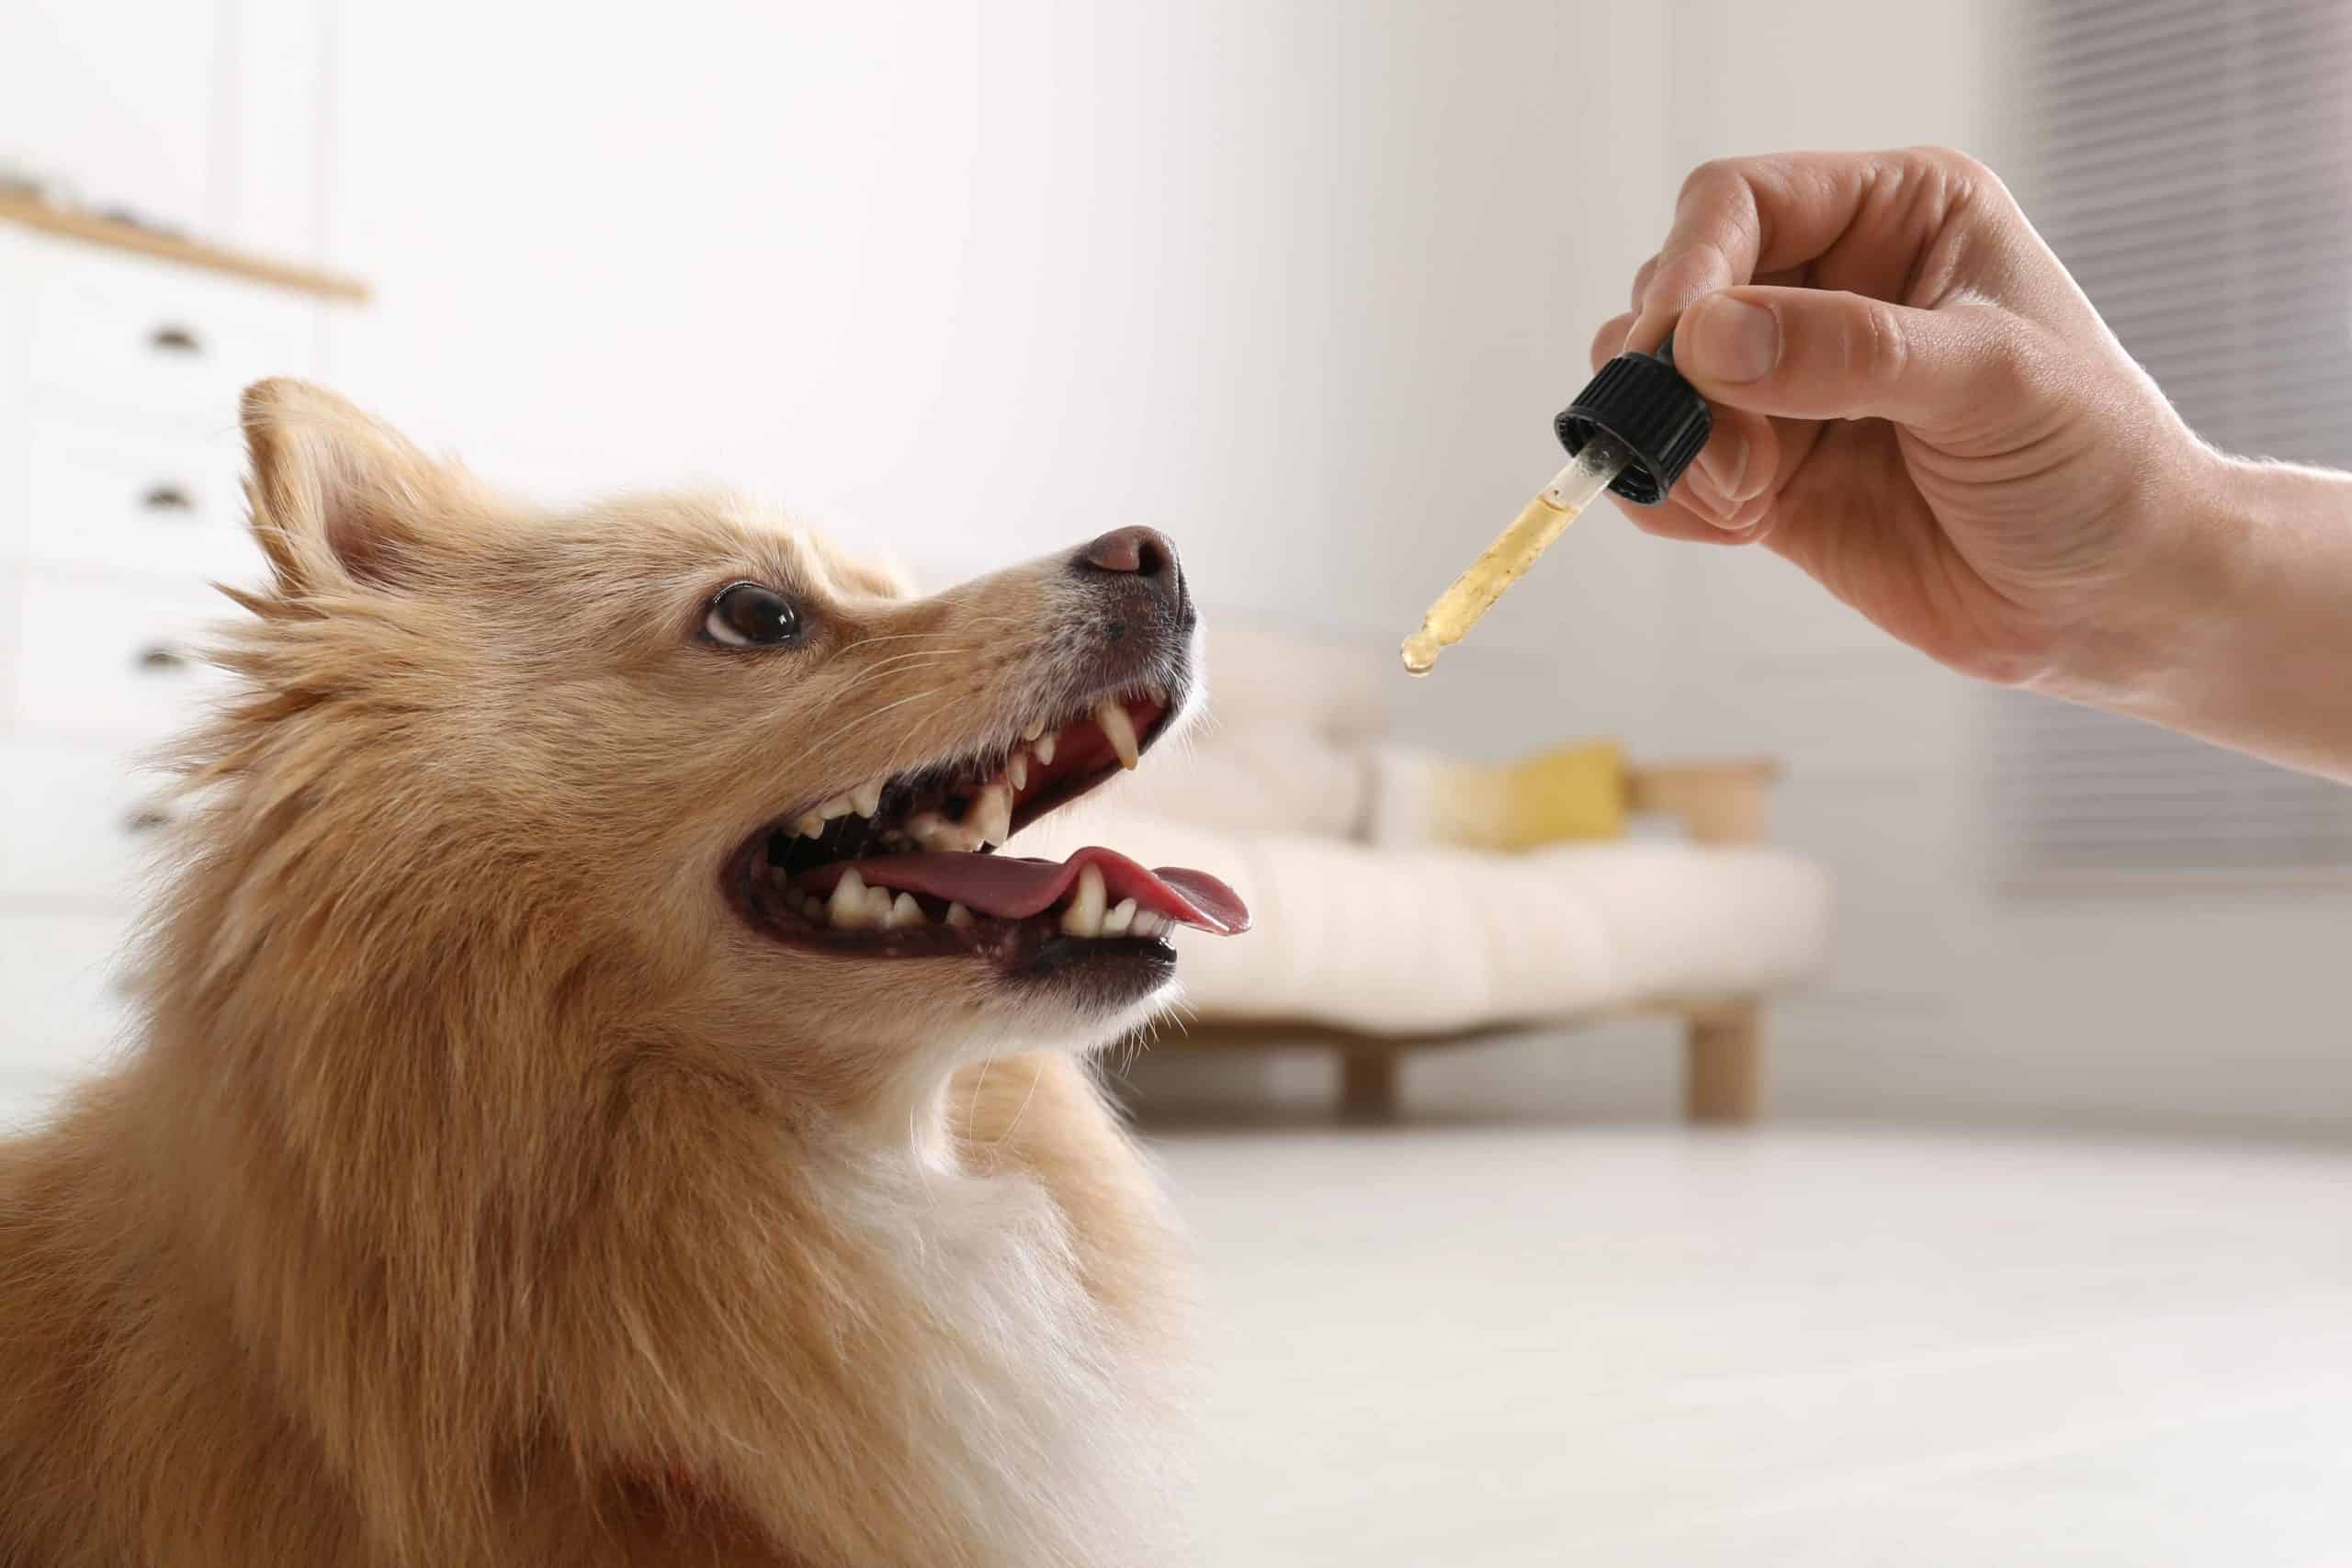 Owner gives dog CBD oil using a dropper. Using a dropper with CBD oil is one of the most direct CBD options for dogs.